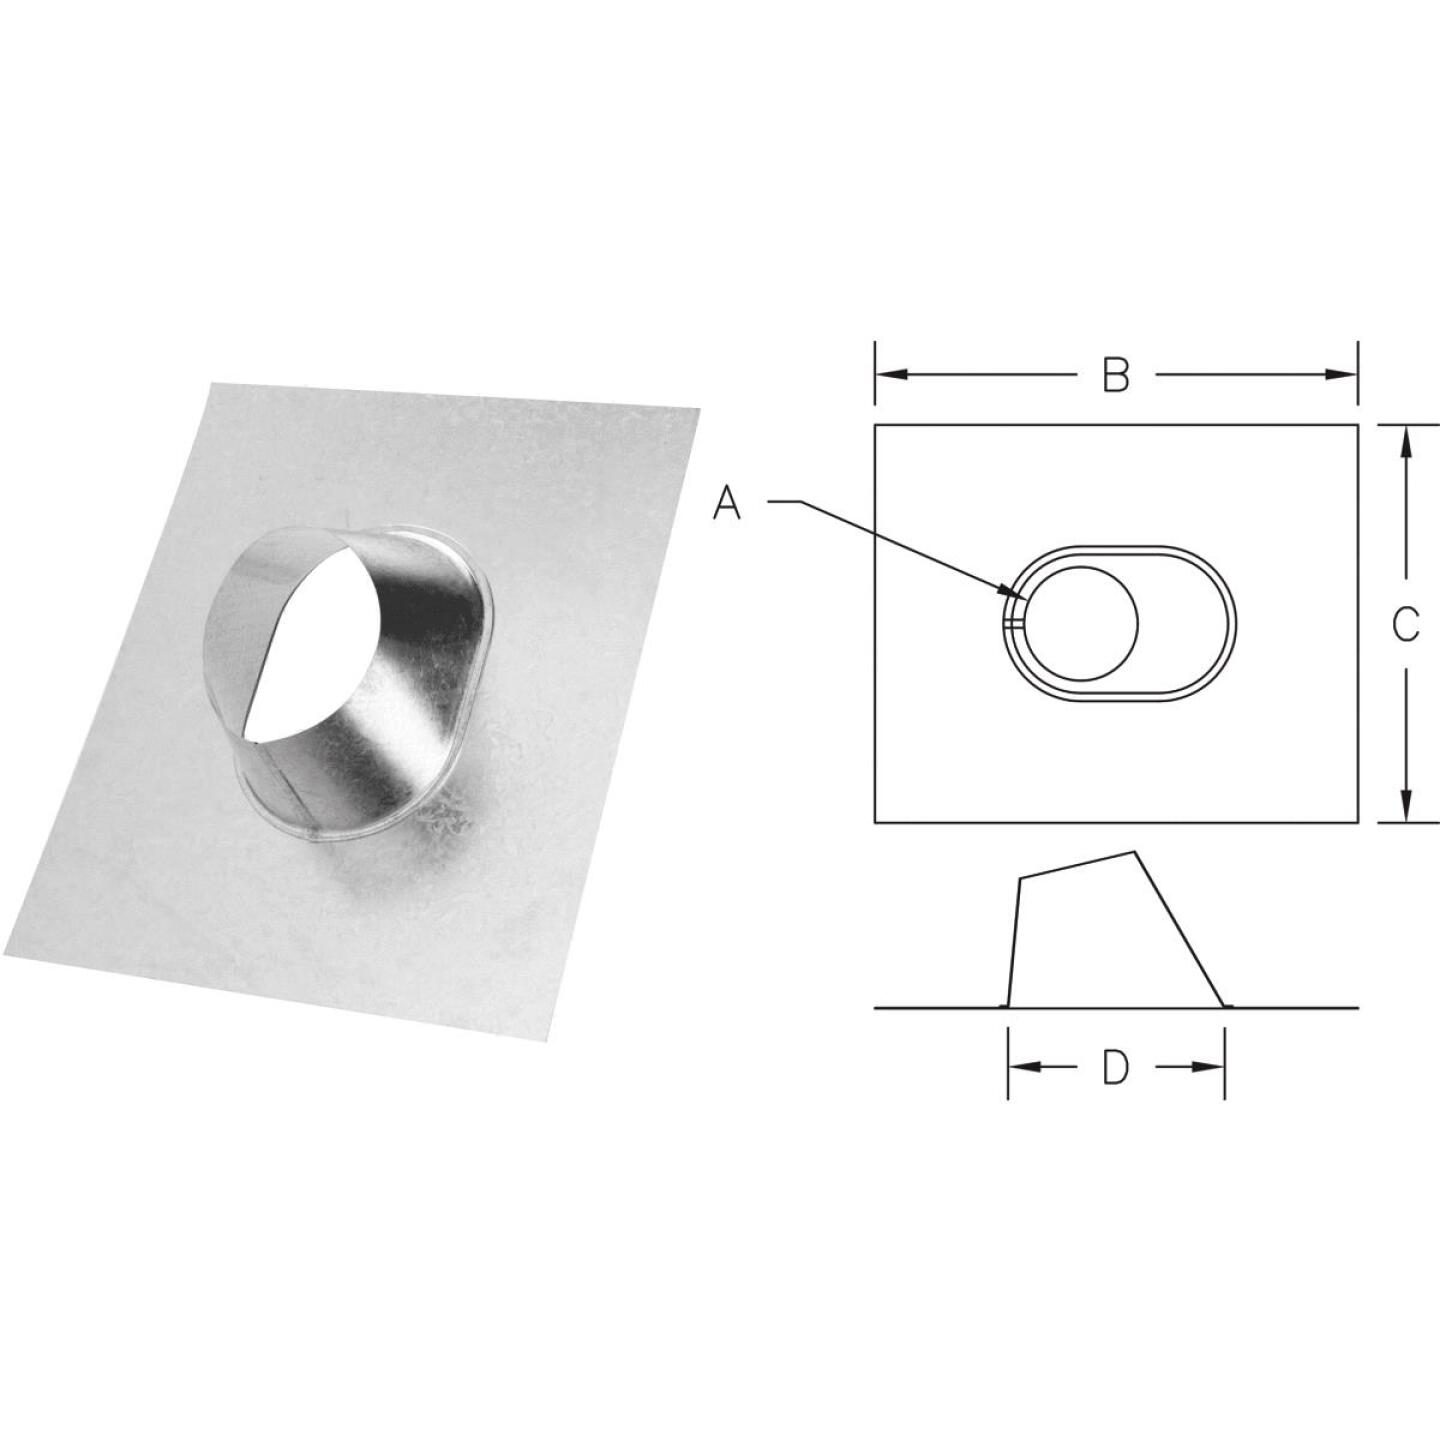 SELKIRK 4 In. RV Gas Vent Adjustable Roof Flashing Image 1